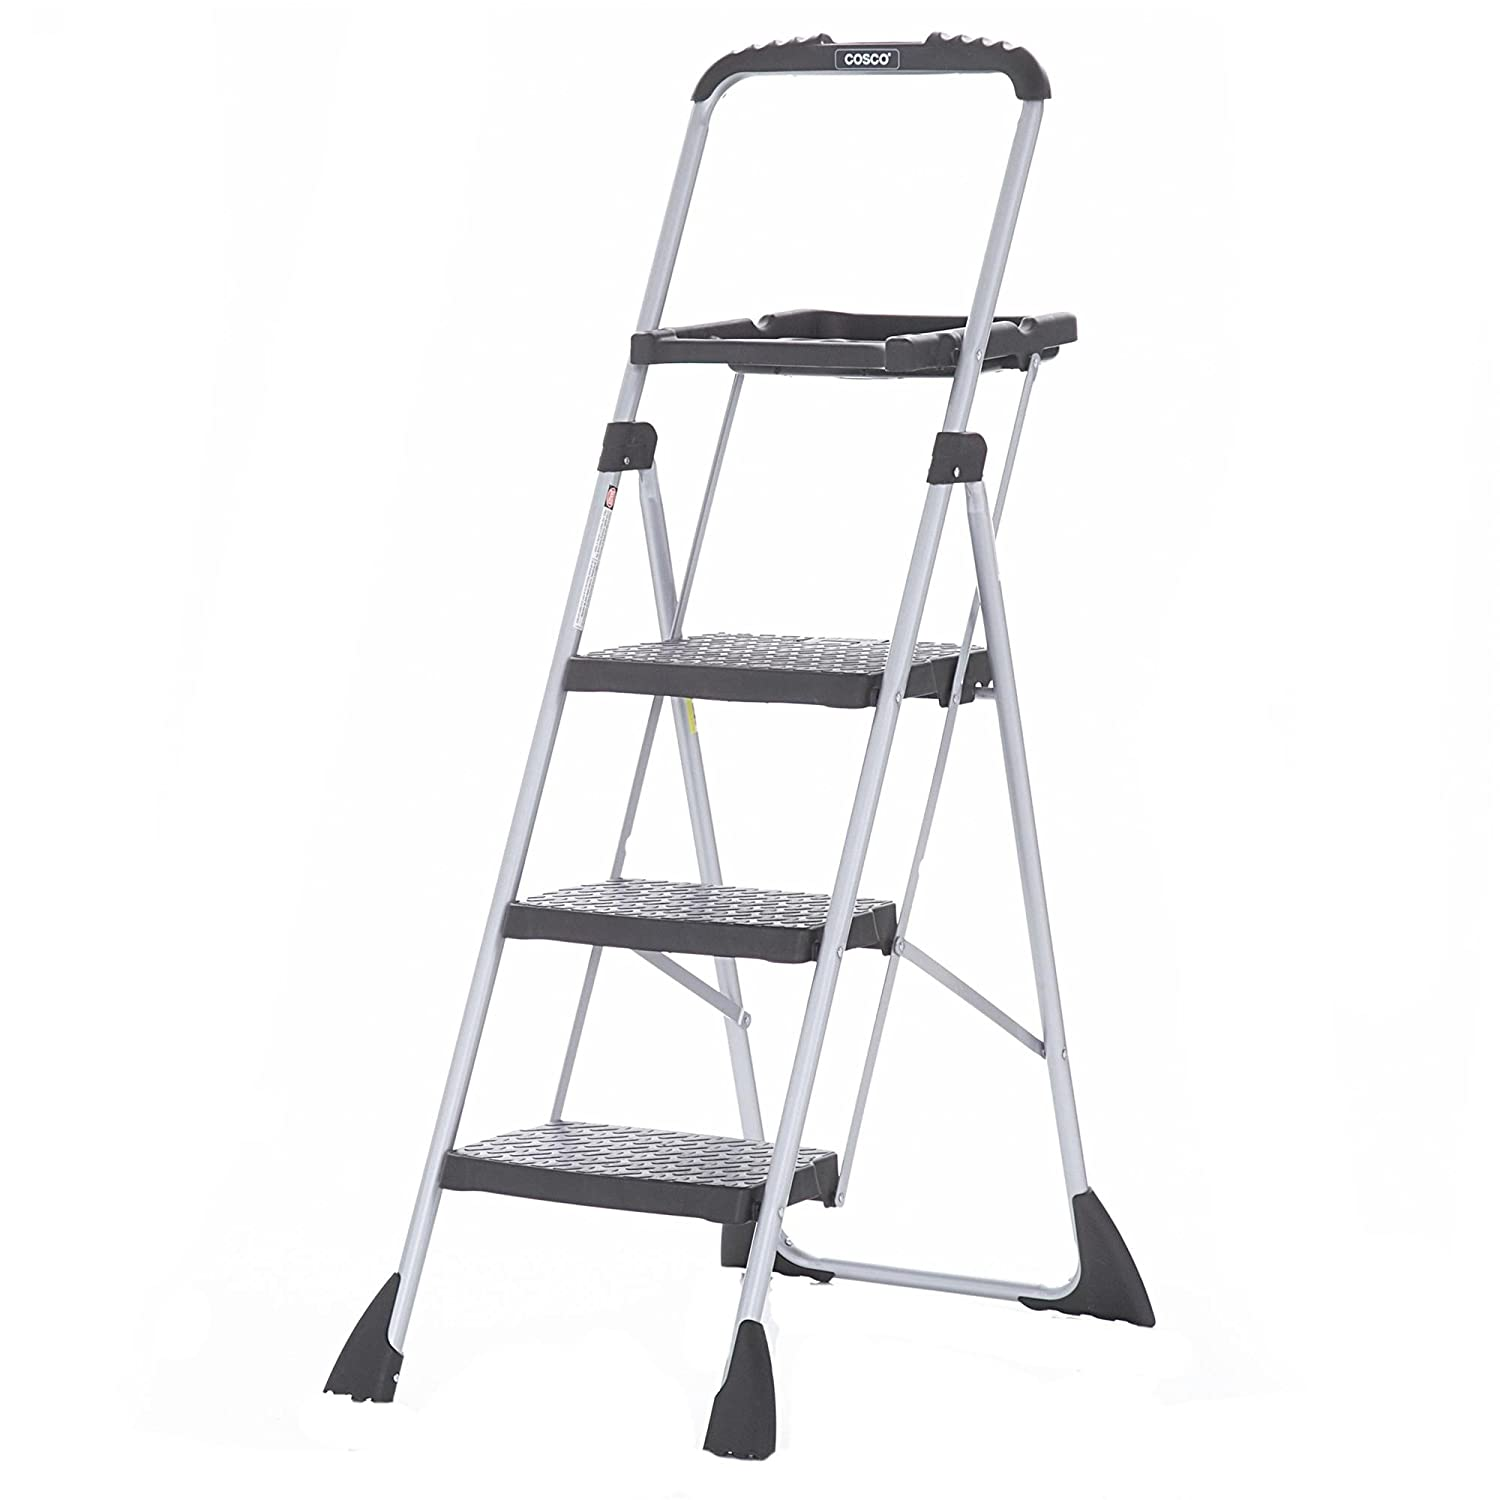 Top 10 Best Lightweight Step Ladders Reviews 2016 2017 On